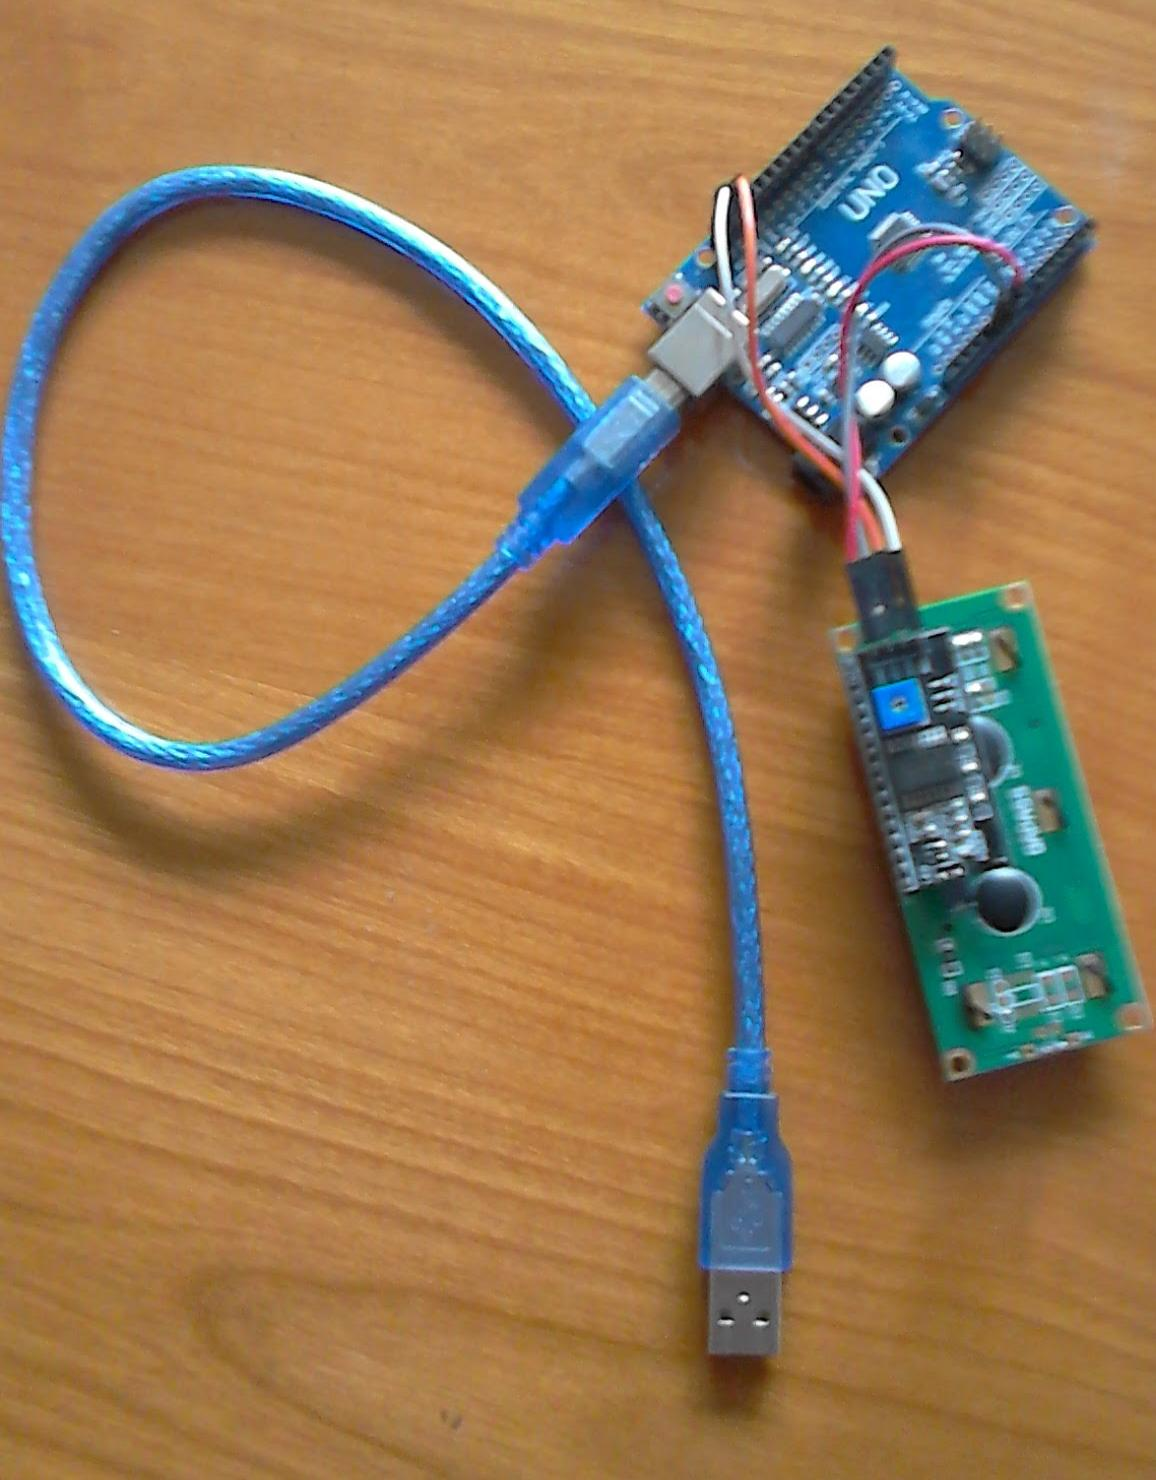 Pin 7 Arduino Obd2a To Obd2b Distributor Wiring Diagram The Jeronimus Net Blog 1602a Lcd With I2c